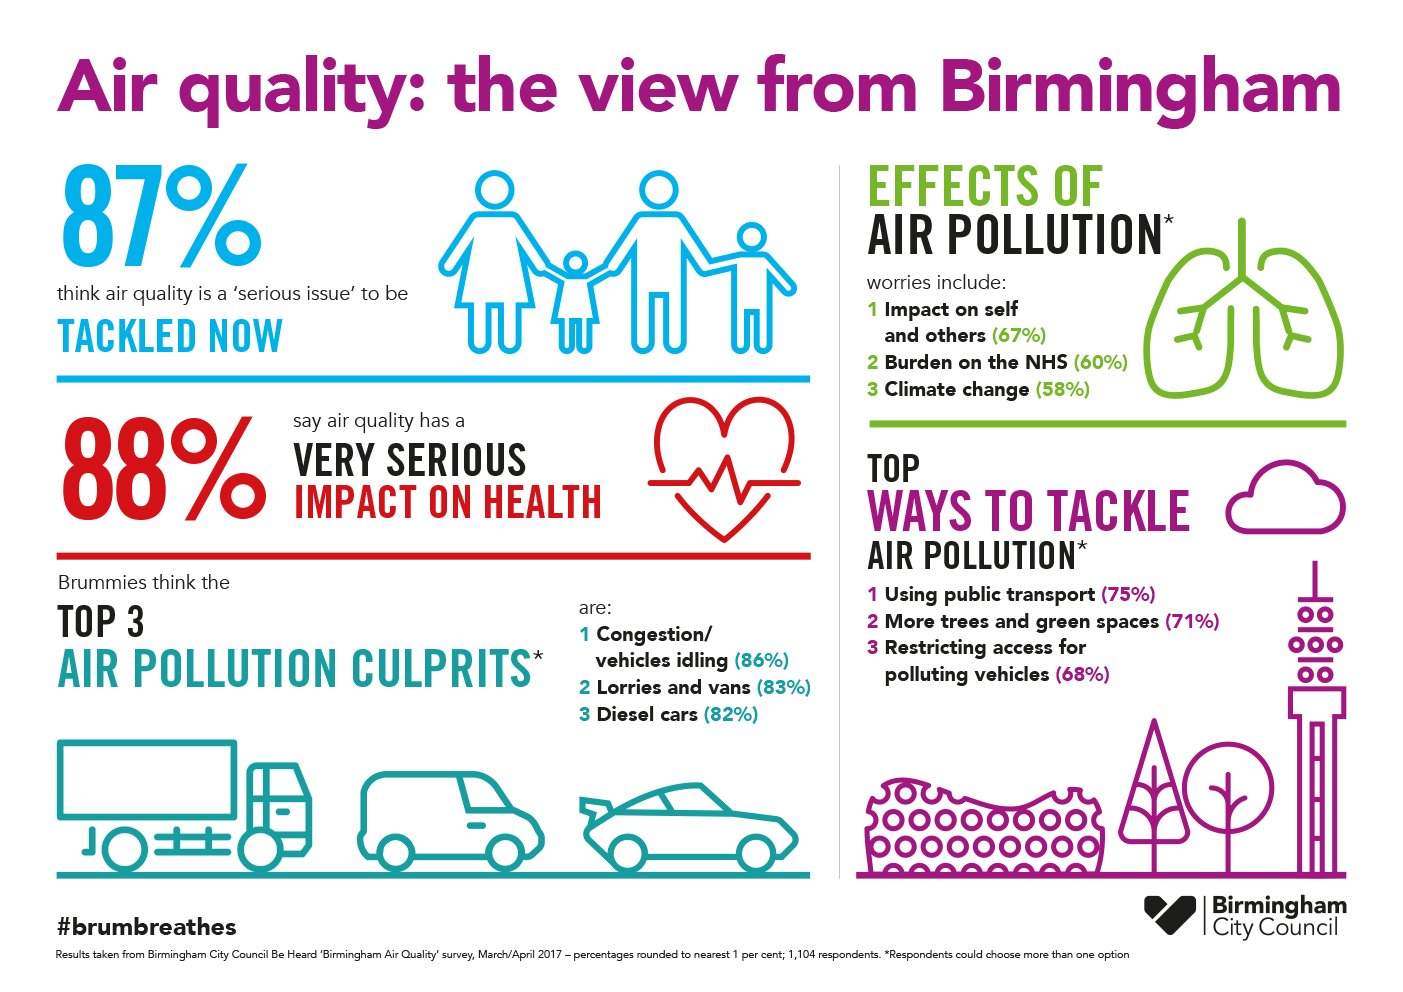 Together we can tackle air pollution. Find out more https://t.co/fC9OIiJiuR #NationalCleanAirDay #brumbreathes https://t.co/drZdQwfV4z